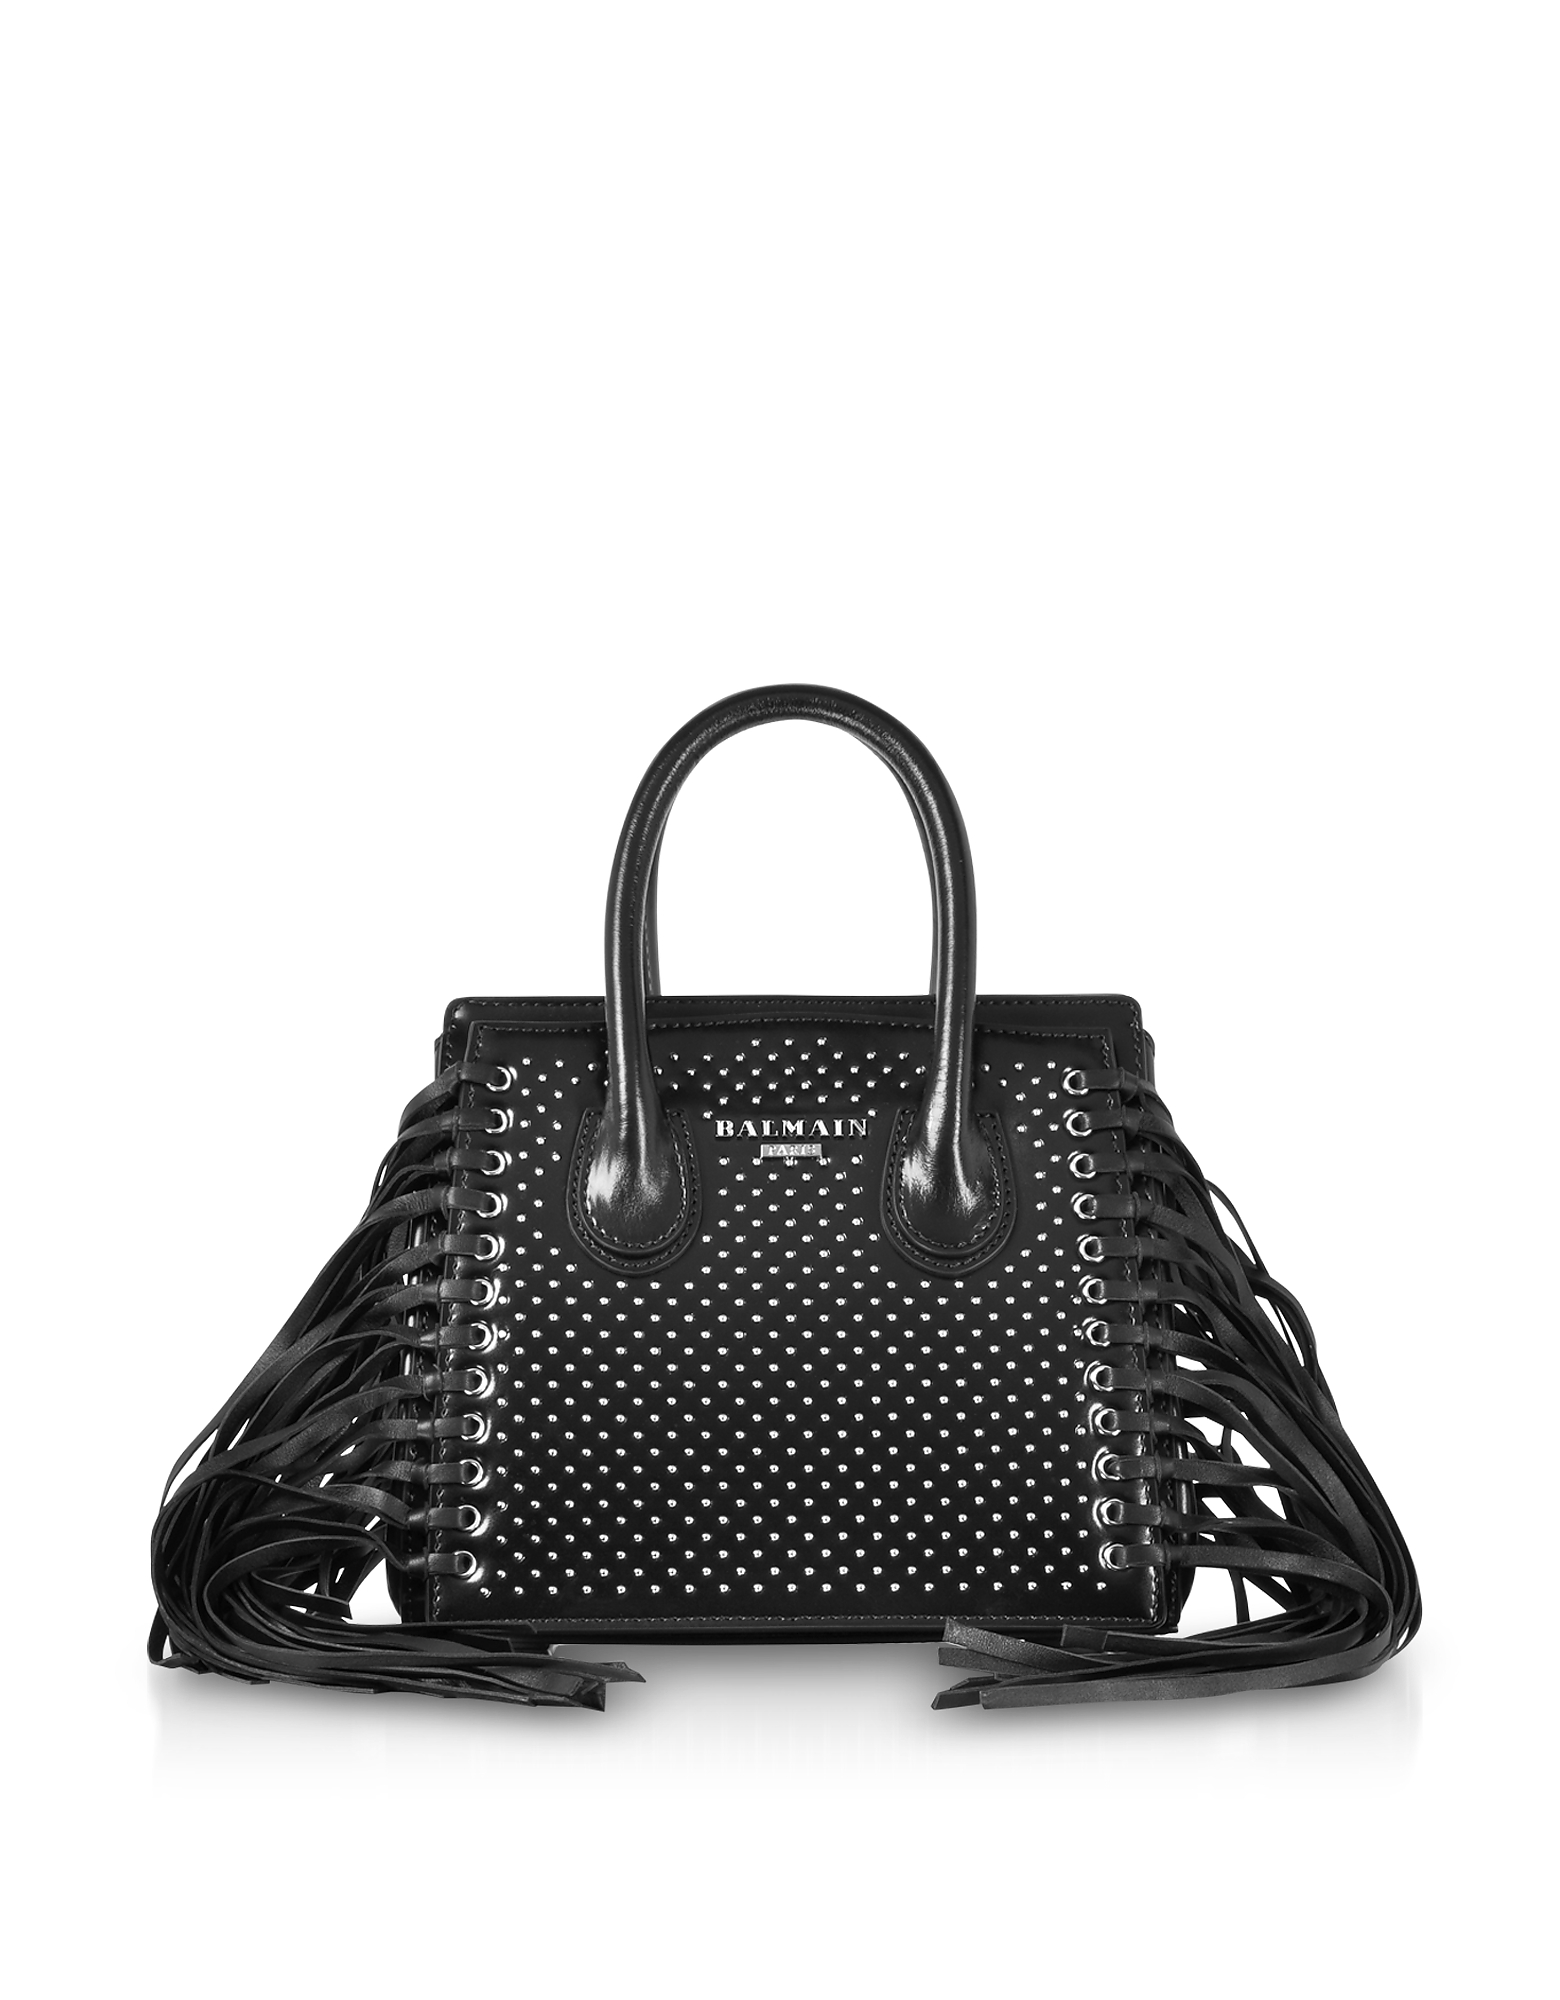 Balmain Handbags, Black Studded Leather Mini 3D Fringes Leather Satchel Bag